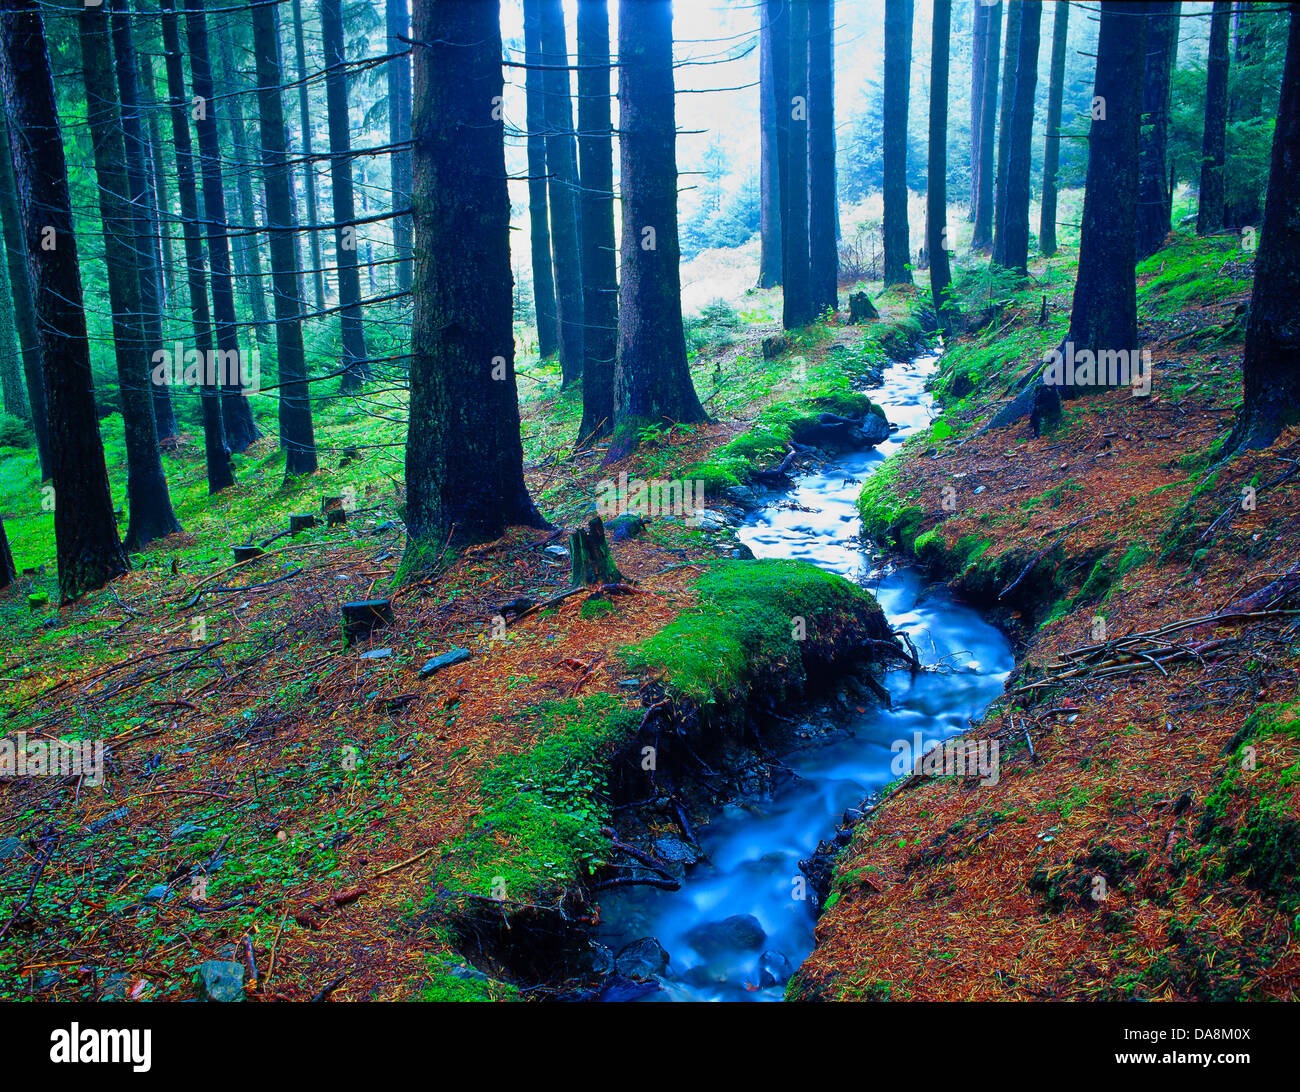 Austria, Europe, Tyrol, Sistrans, wood, forest, spruces, spruce forest, trees, water, little brooks, brook, flowing, - Stock Image